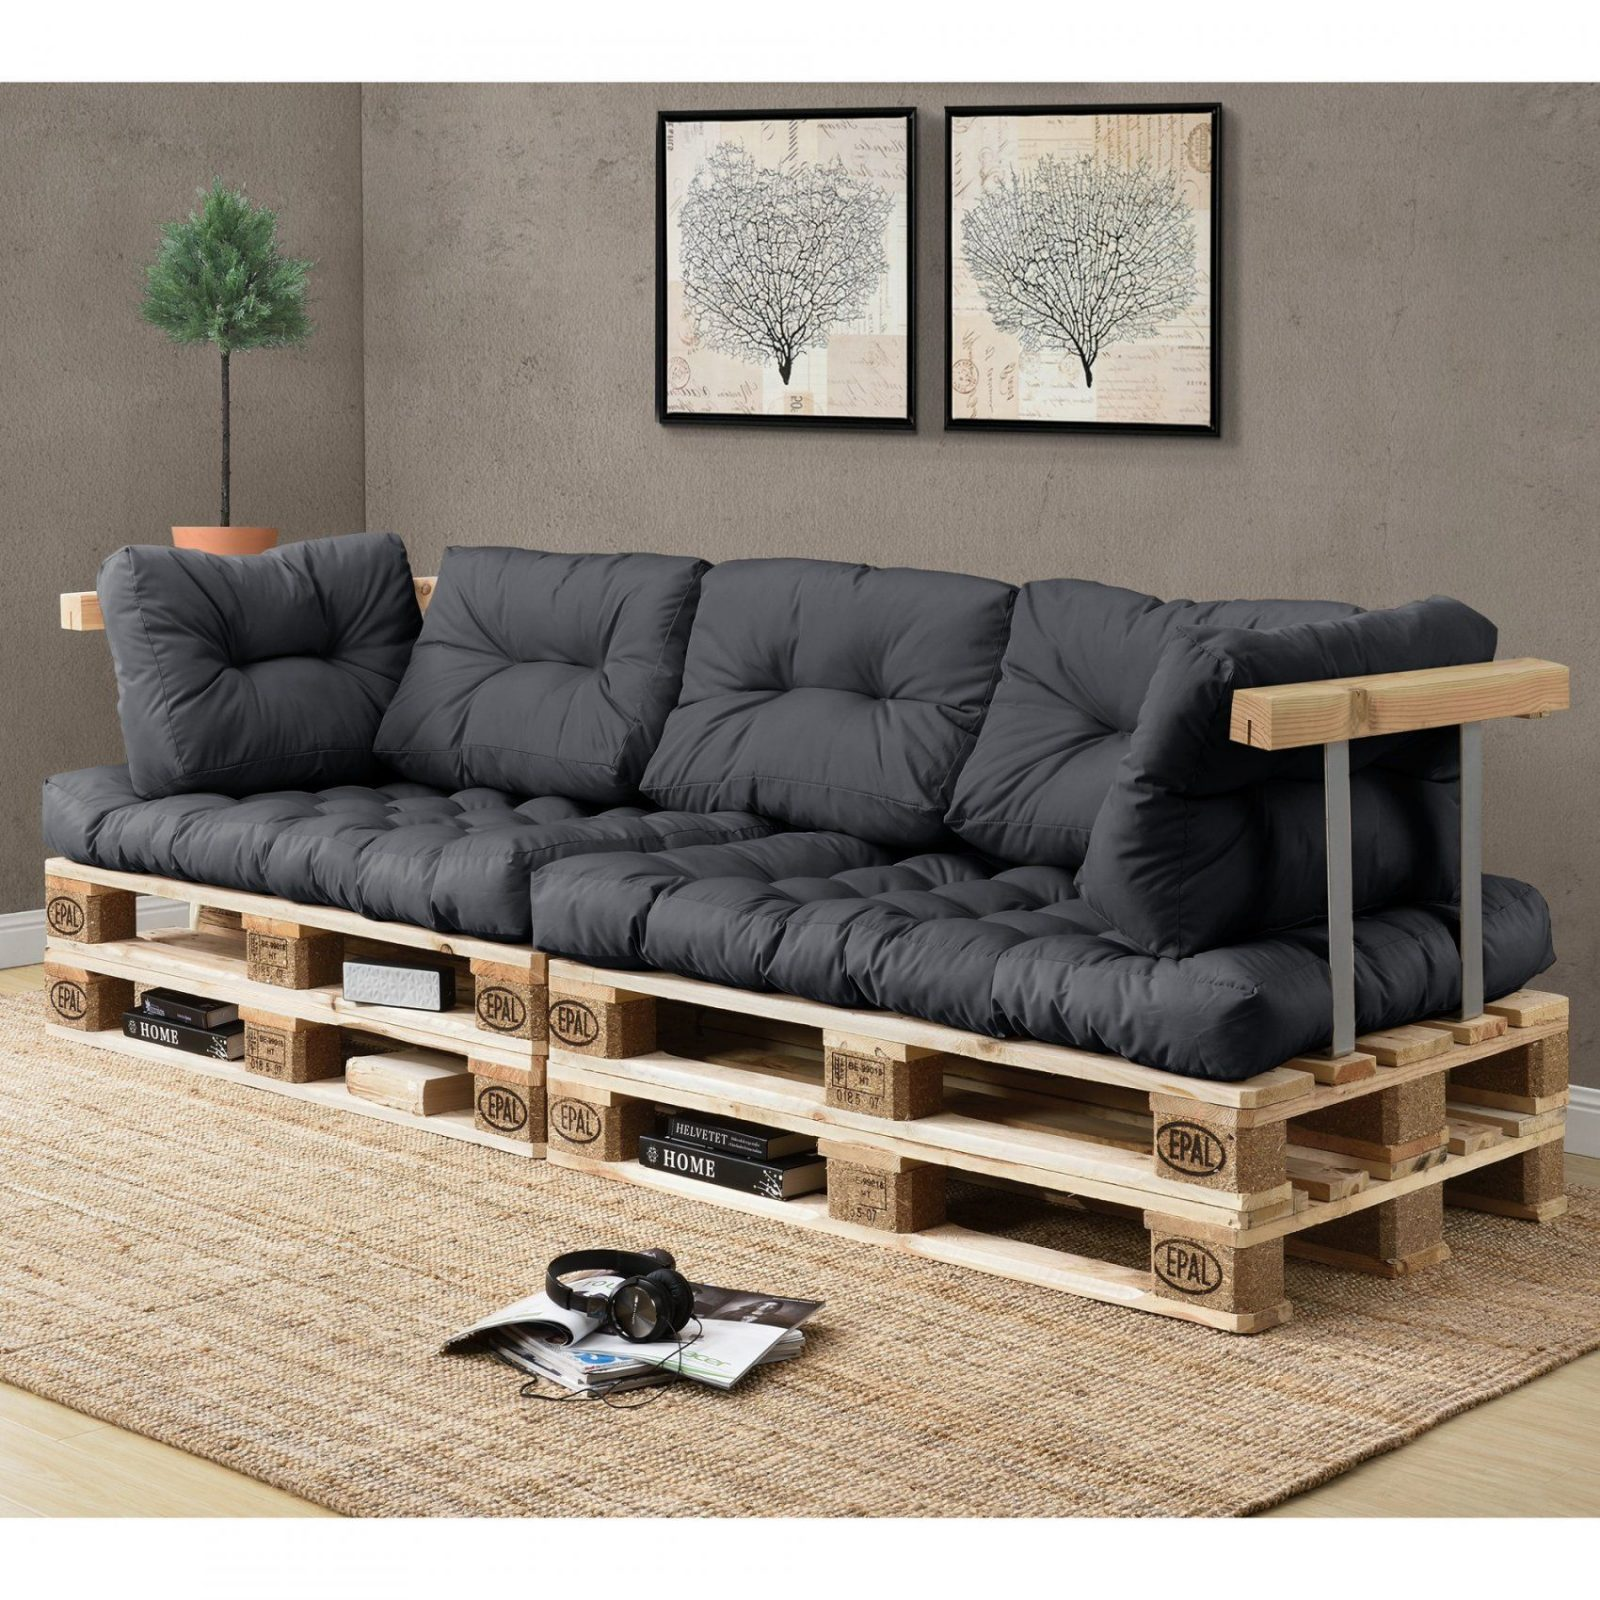 Couch Selbst Bauen Cheap Couch Selbst Bauen Polster Selbera Sofa von Couch Selber Bauen Polsterung Photo